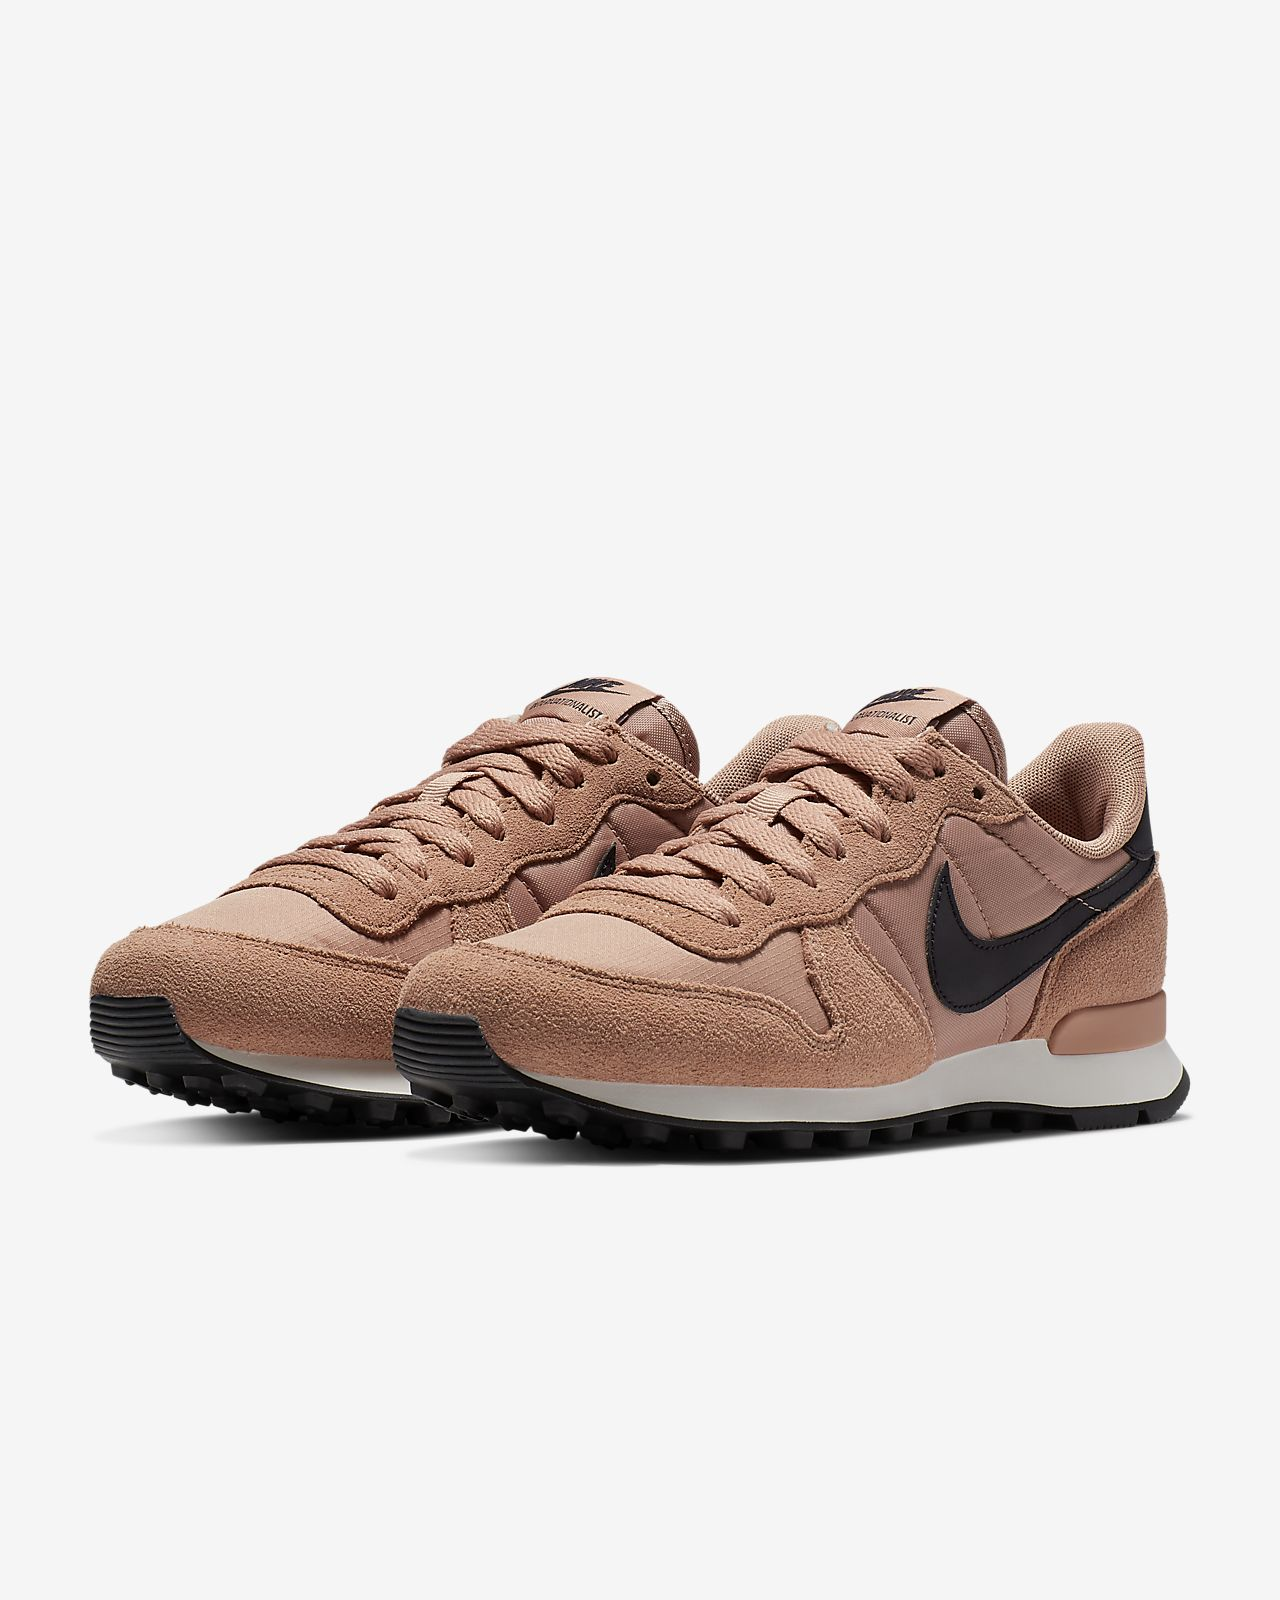 sale retailer 80957 a7788 Low Resolution Nike Internationalist Zapatillas - Mujer Nike  Internationalist Zapatillas - Mujer